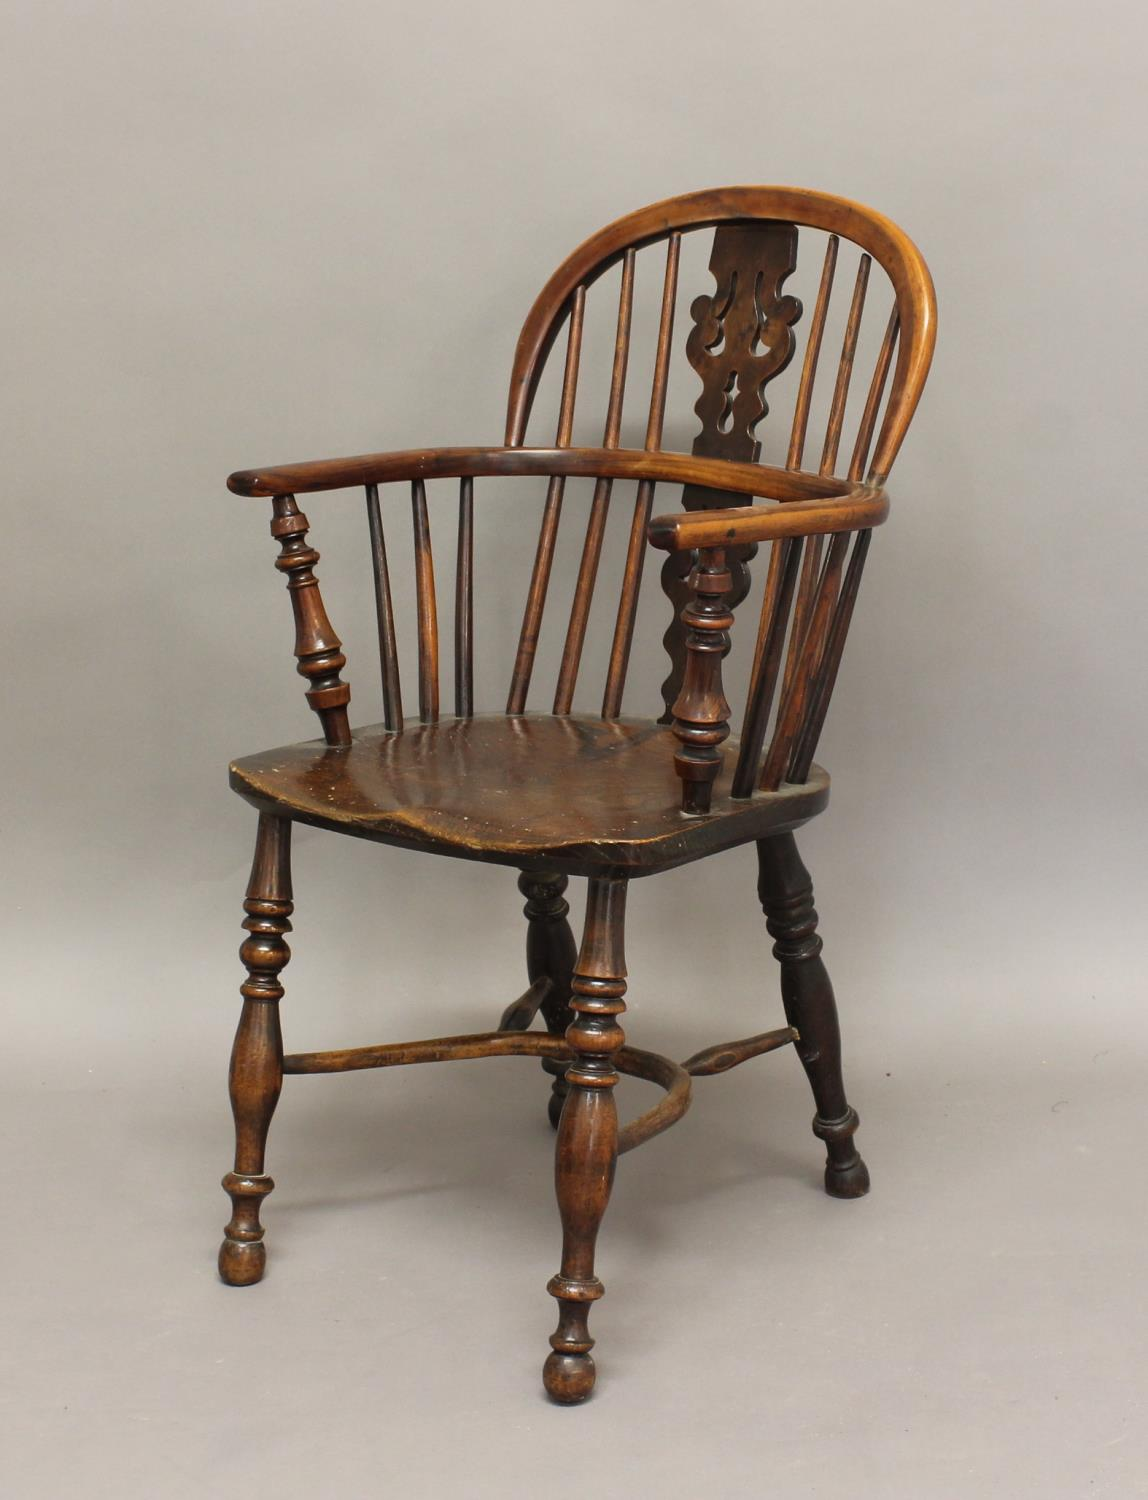 A YEW AND ELM WINDSOR CHAIR, the arched back with pierced splat on turned supports with crinoline